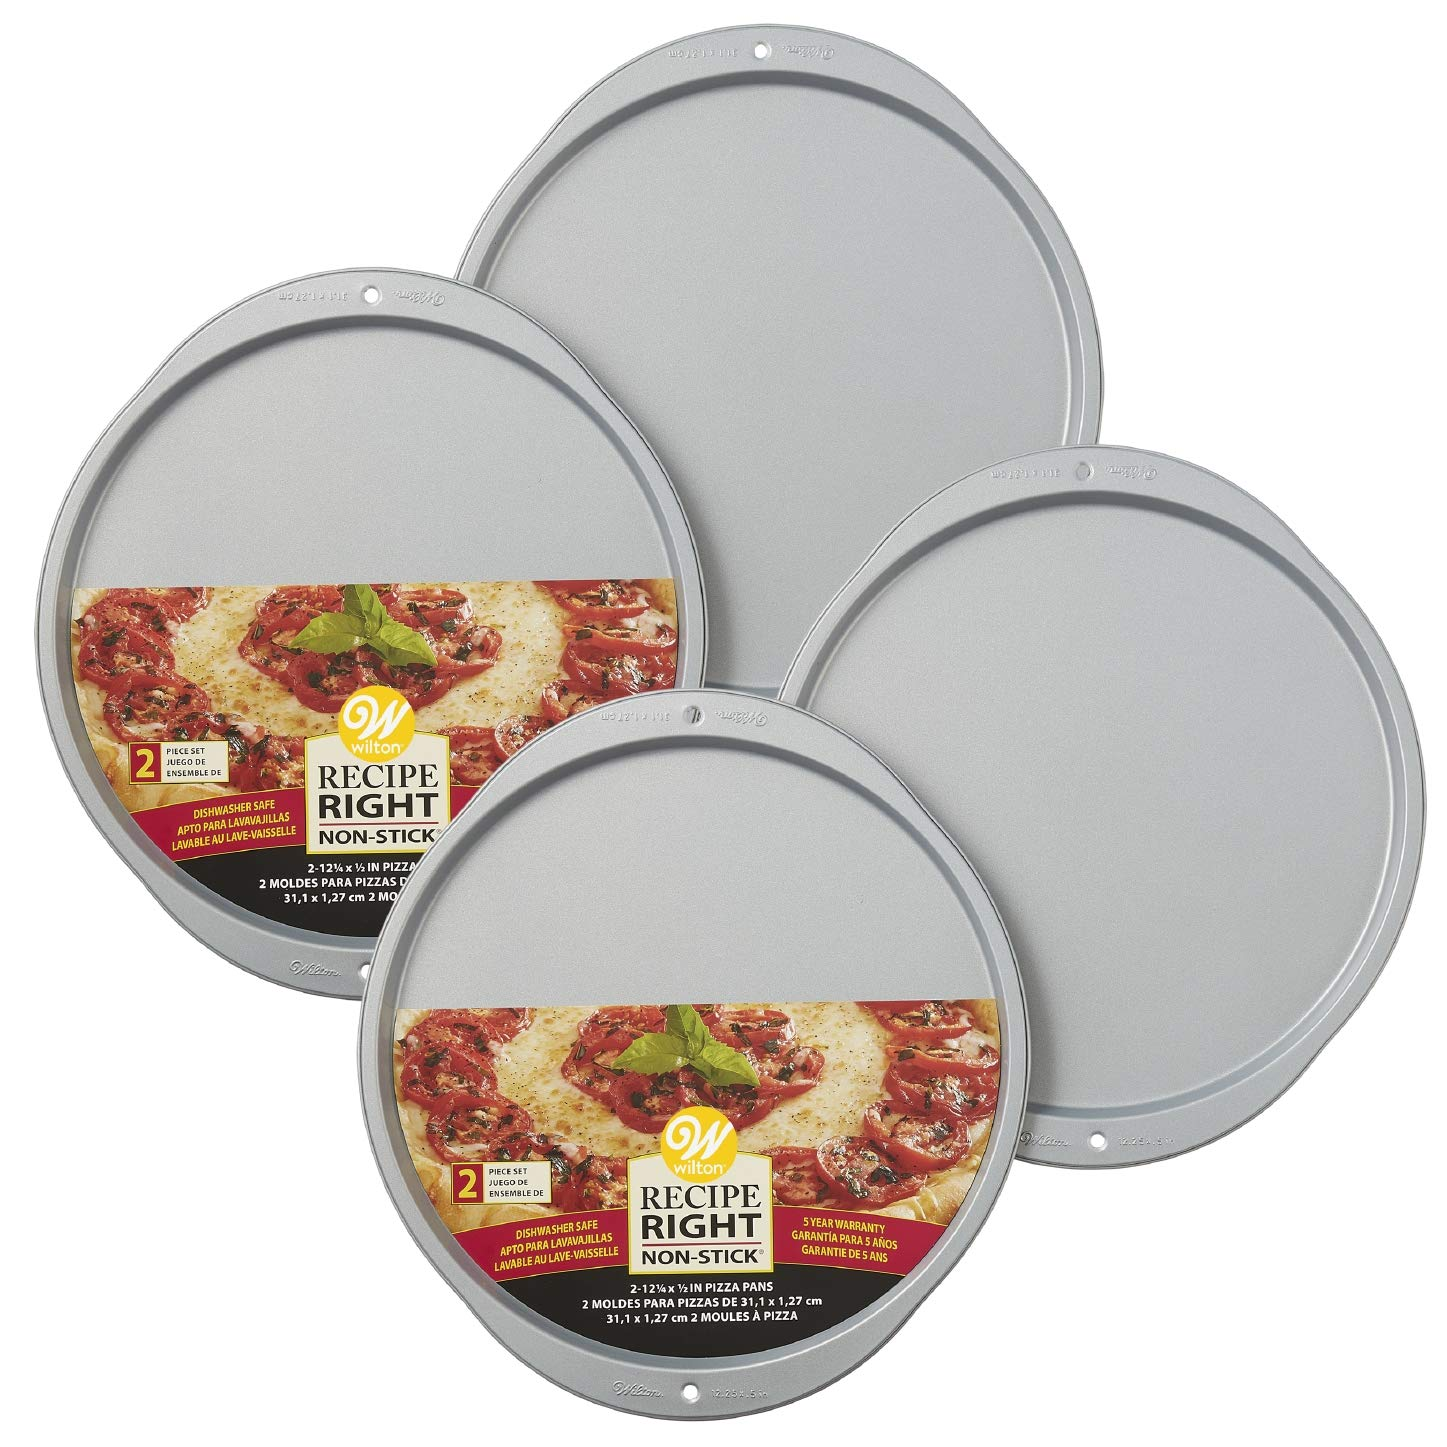 Amazon.com: Wilton Recipe Right Non-Stick 12-Inch Pizza Pans Set, Multipack of 2: Kitchen & Dining